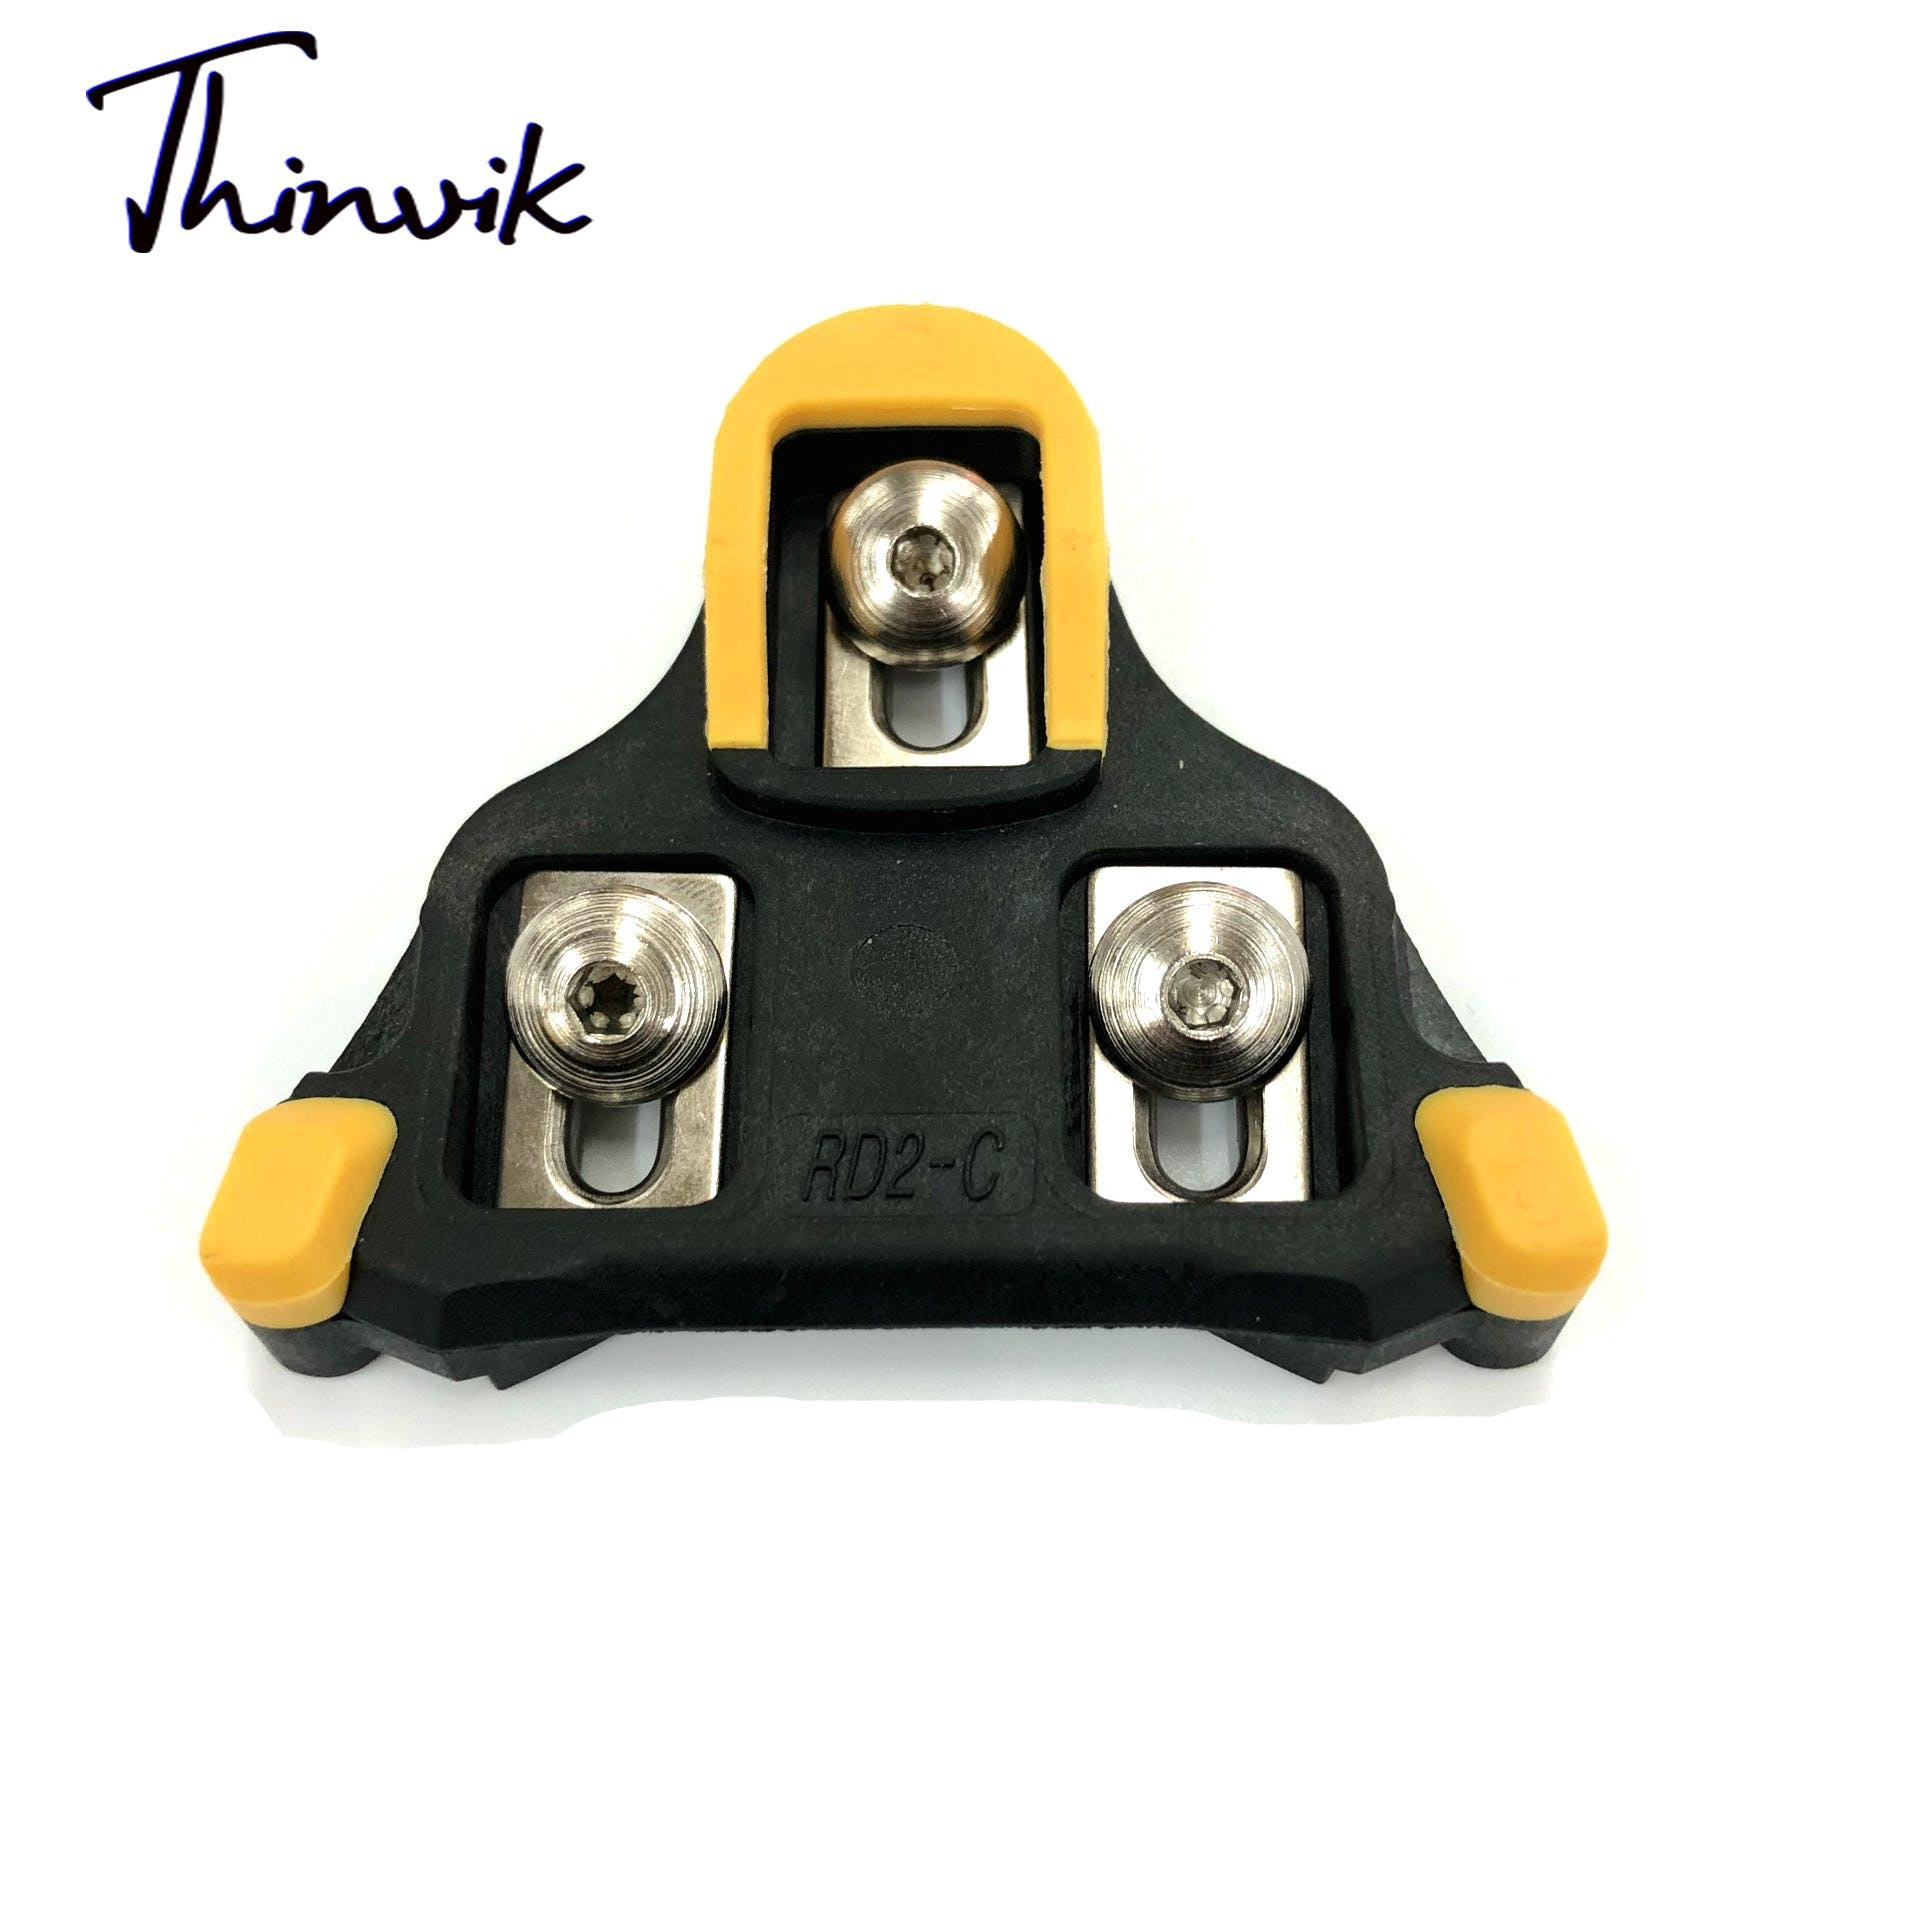 edec587600b9 Thinvik Road Bike Cleats 6 Degree Float Self-locking Cycling Pedals Cleat  For Shimano SH-11 SPD-SL System Shoes   Curated.com